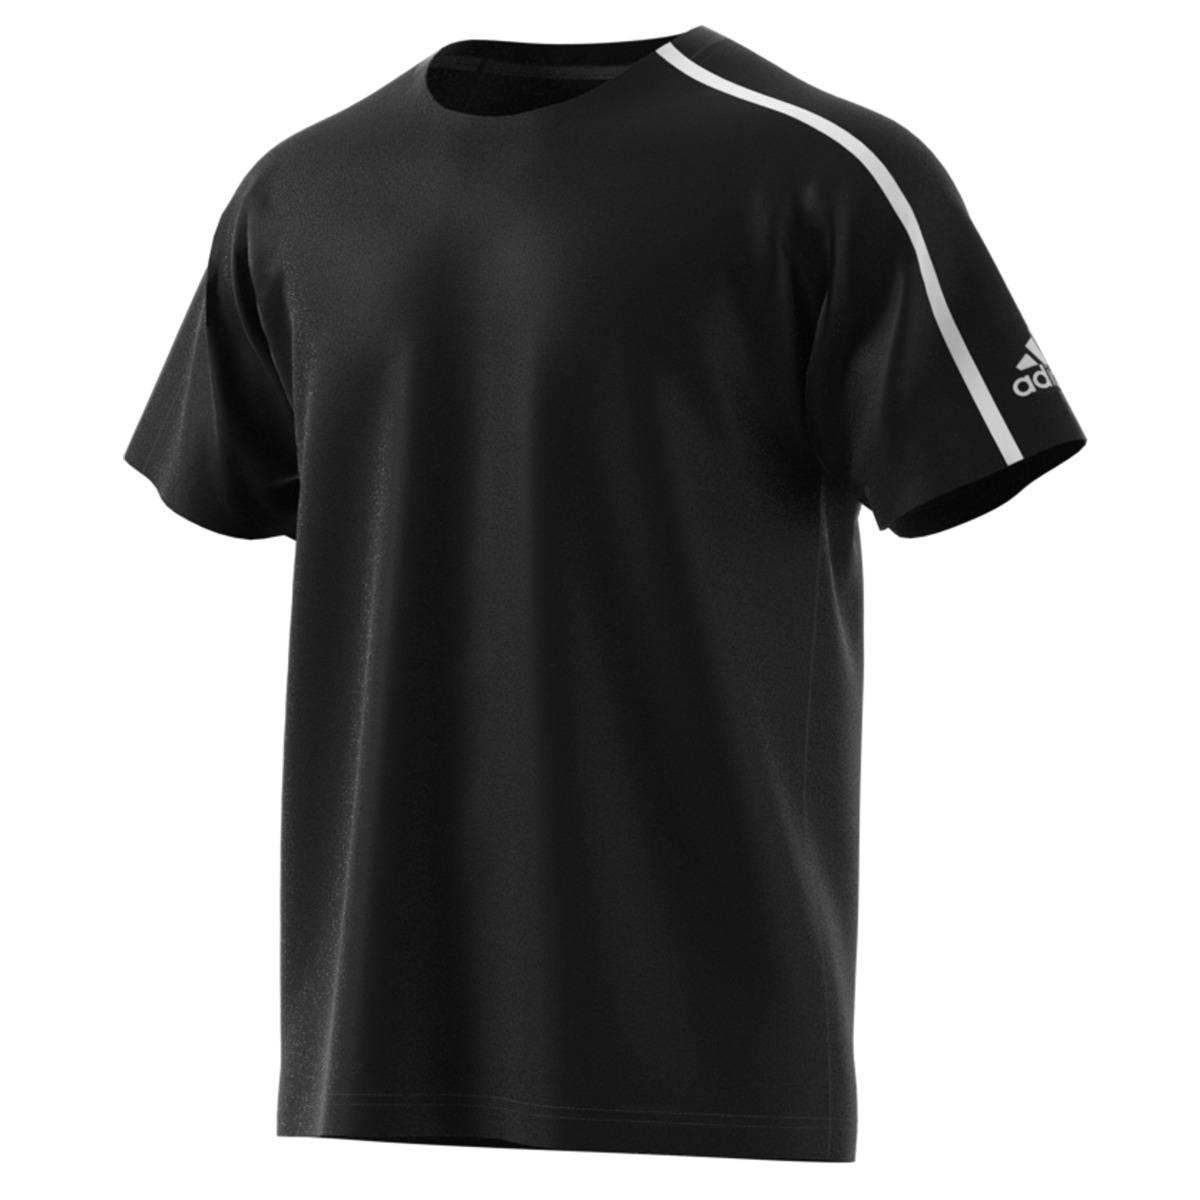 0b5c92a53 Adidas Zne T-shirt in Black for Men - Lyst